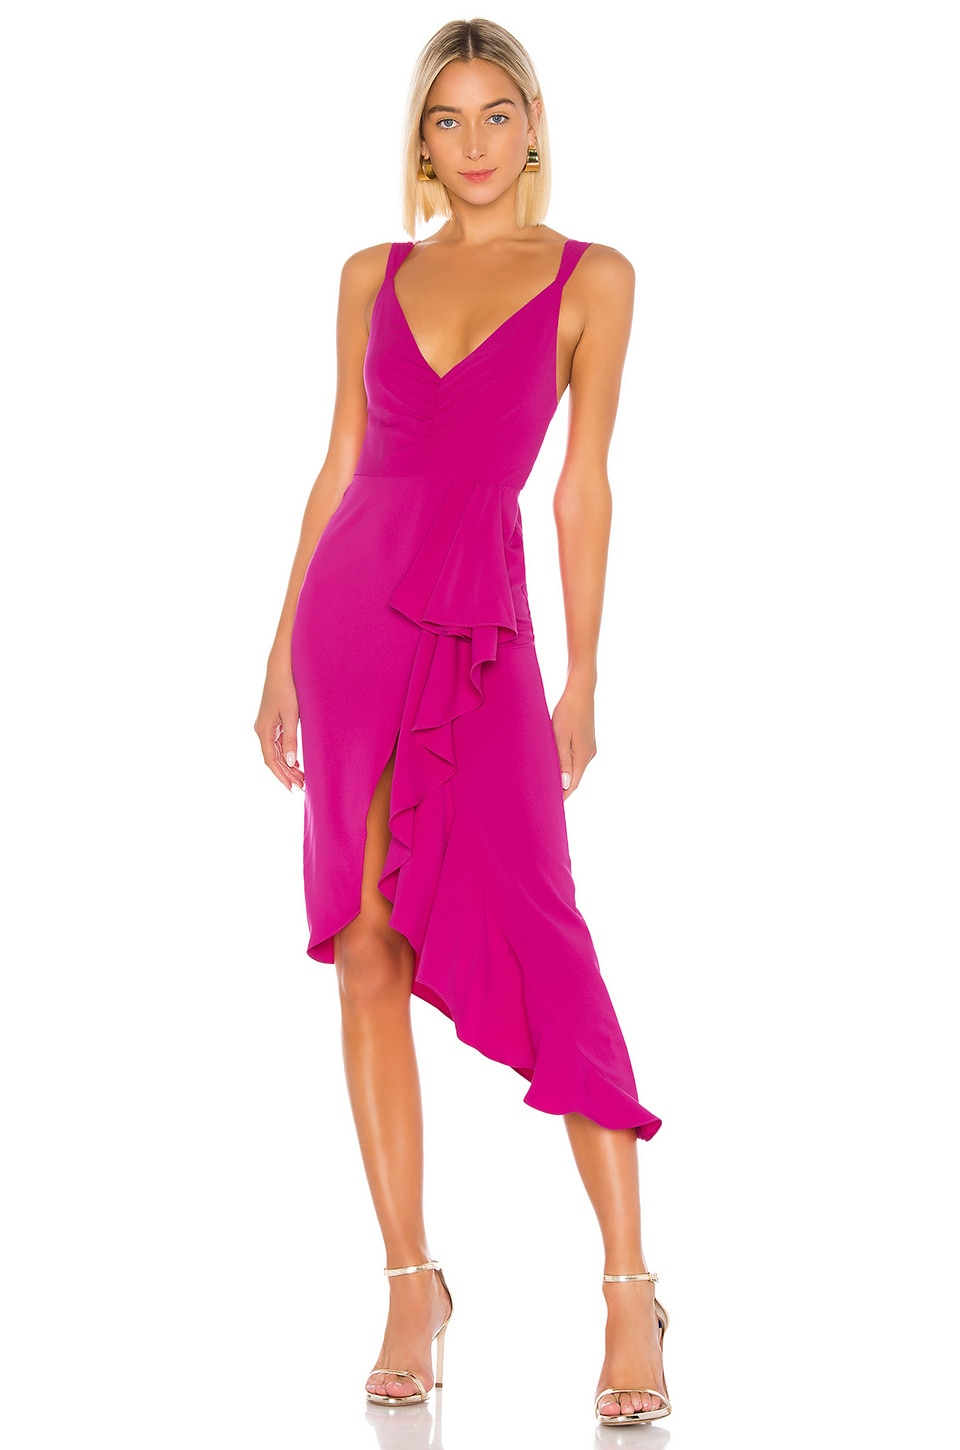 Lovers + Friends Claire Dress in Very Berry